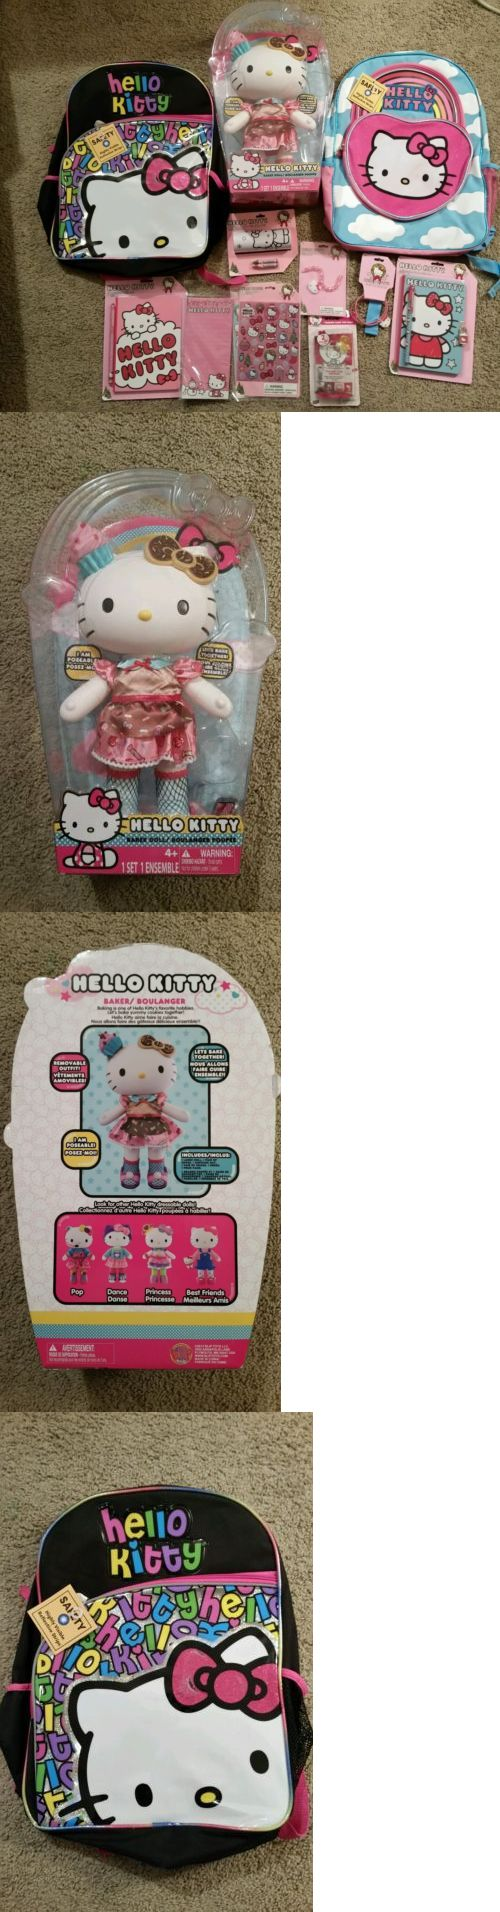 Hello Kitty 5204: Hello Kitty Baker Doll Large 12 Doll And Backpack Set -> BUY IT NOW ONLY: $150 on eBay!